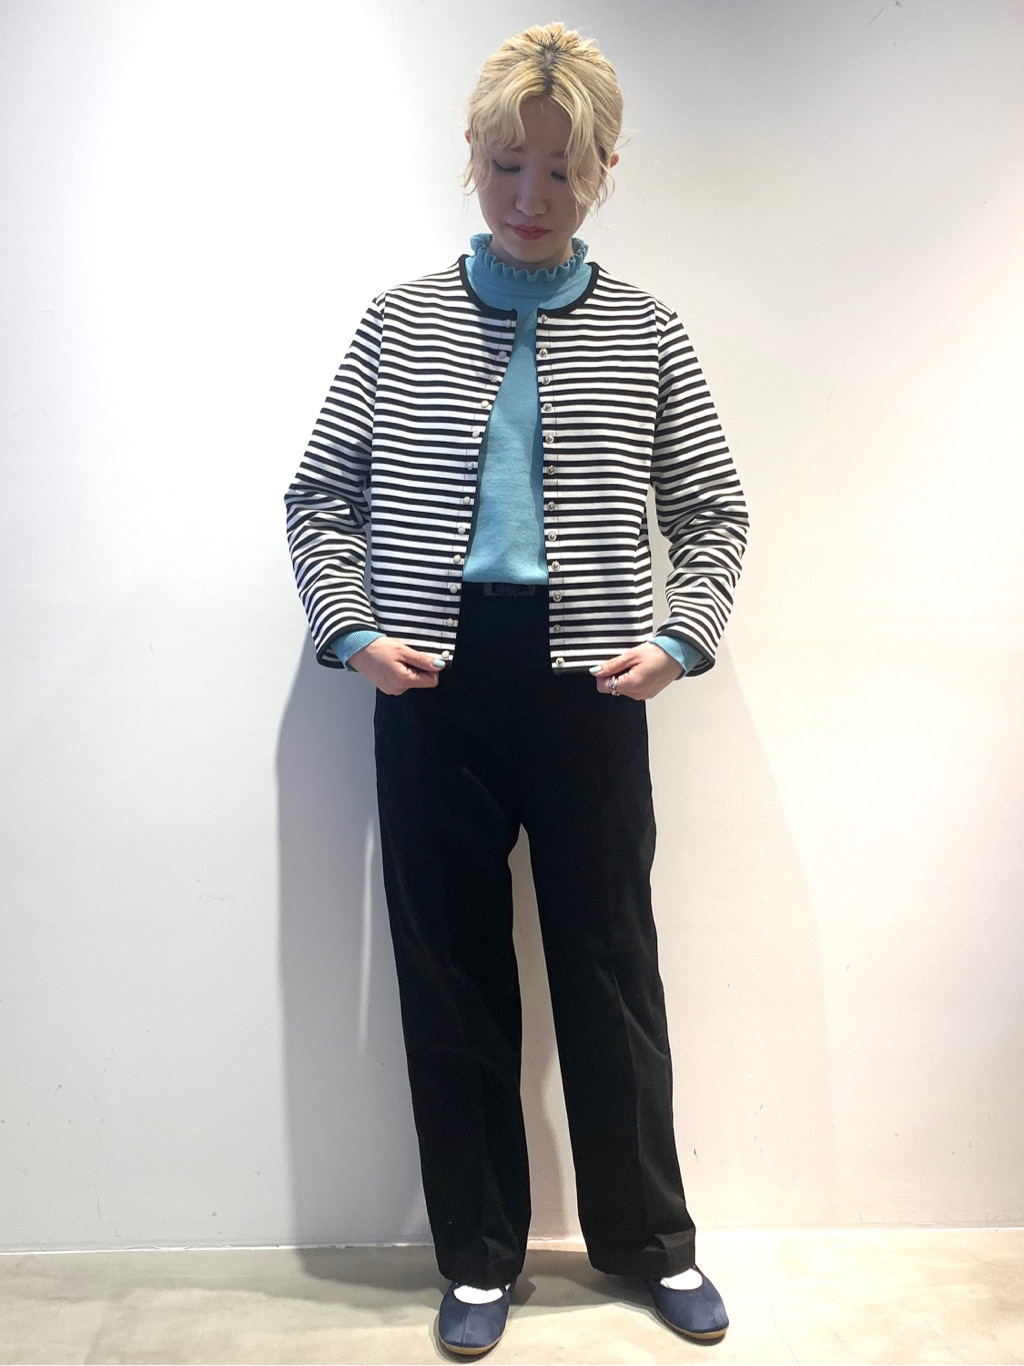 Dot and Stripes CHILD WOMAN ラフォーレ原宿 身長:160cm 2021.01.04